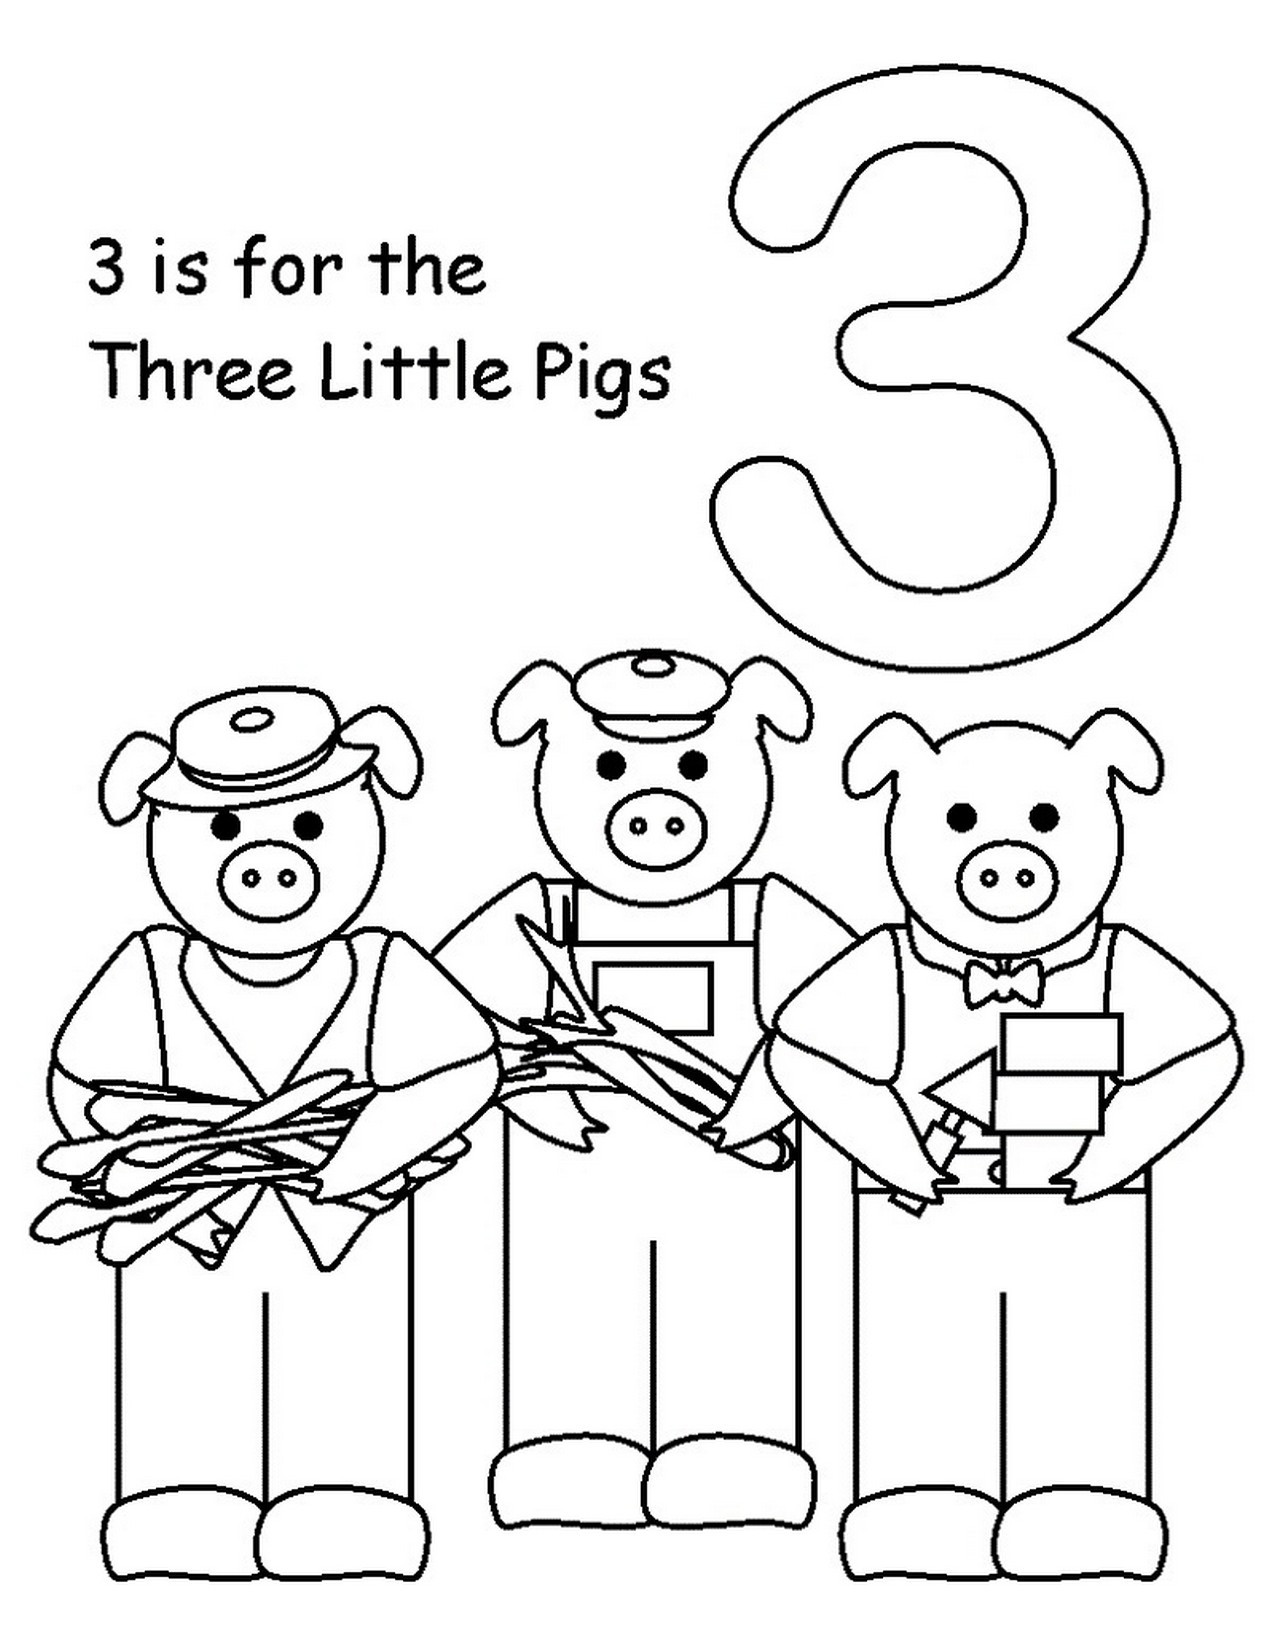 Preschool Coloring Sheets For The 3 Little Pigs Paper Plate Pig  Three Little Pigs Coloring Pages for Preschool